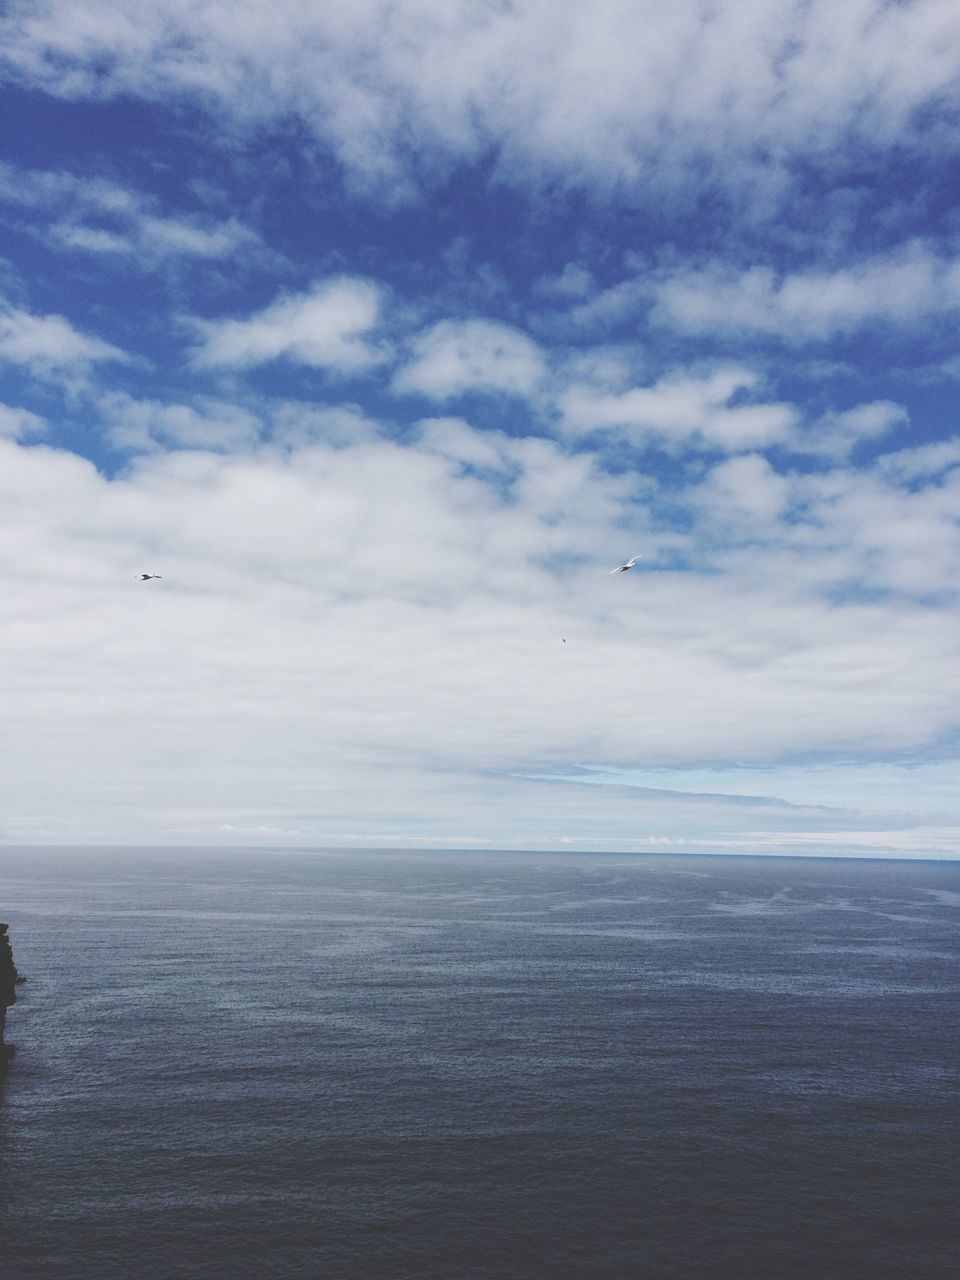 sea, horizon over water, tranquil scene, scenics, beauty in nature, tranquility, sky, nature, water, cloud - sky, idyllic, outdoors, no people, day